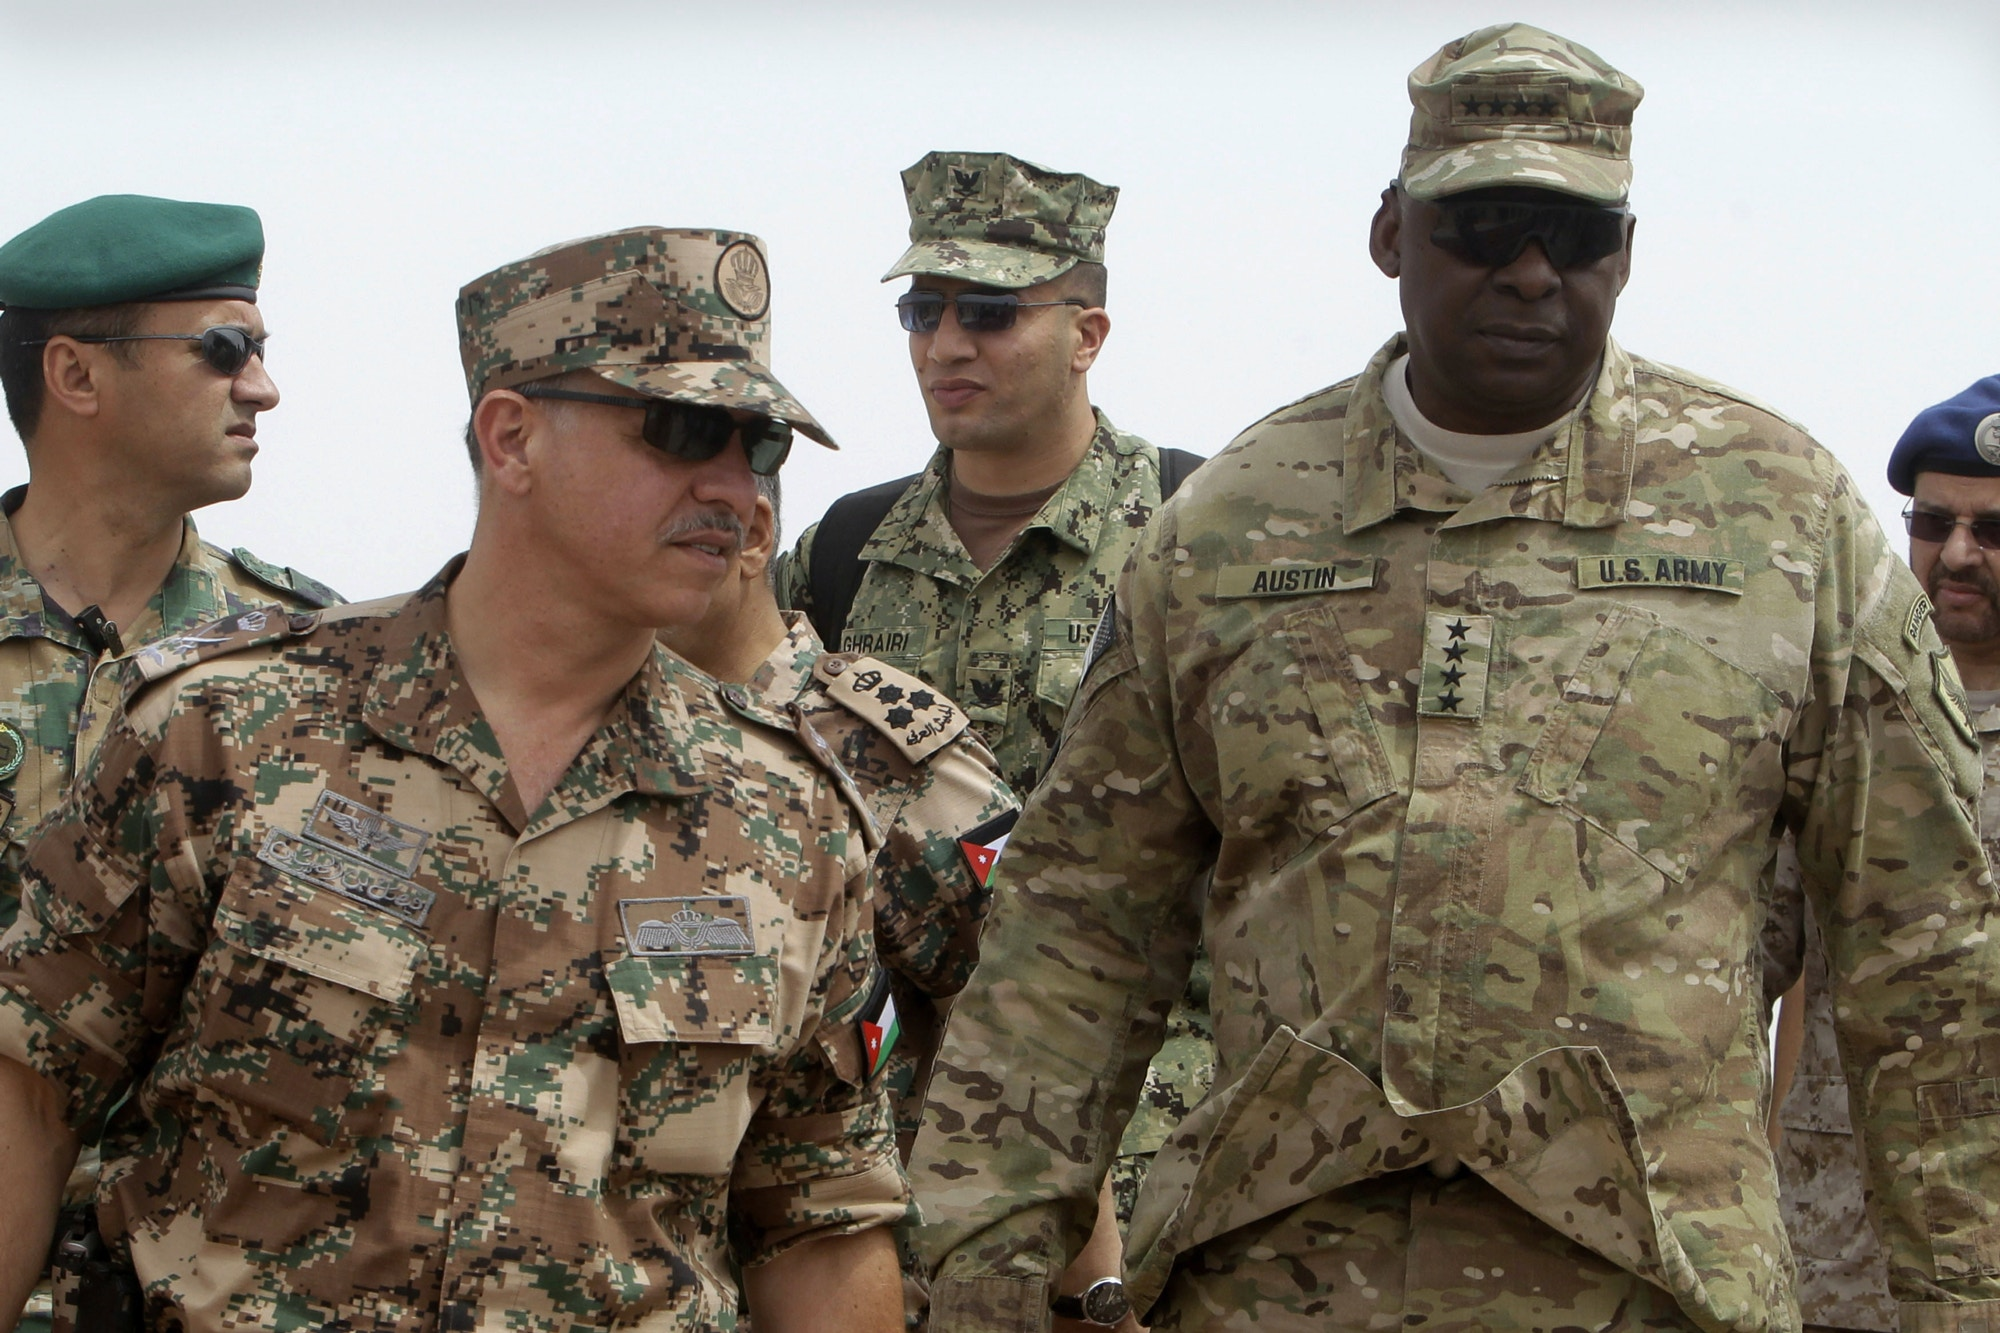 Jordanian Prince Faisal Bin al Hussein, left, and U.S. soldiers inspect 18-nation military exercises in a field near the border with Saudi Arabia, in Mudawara, 280 kilometers south of Amman, Jordan, on May 18, 2015